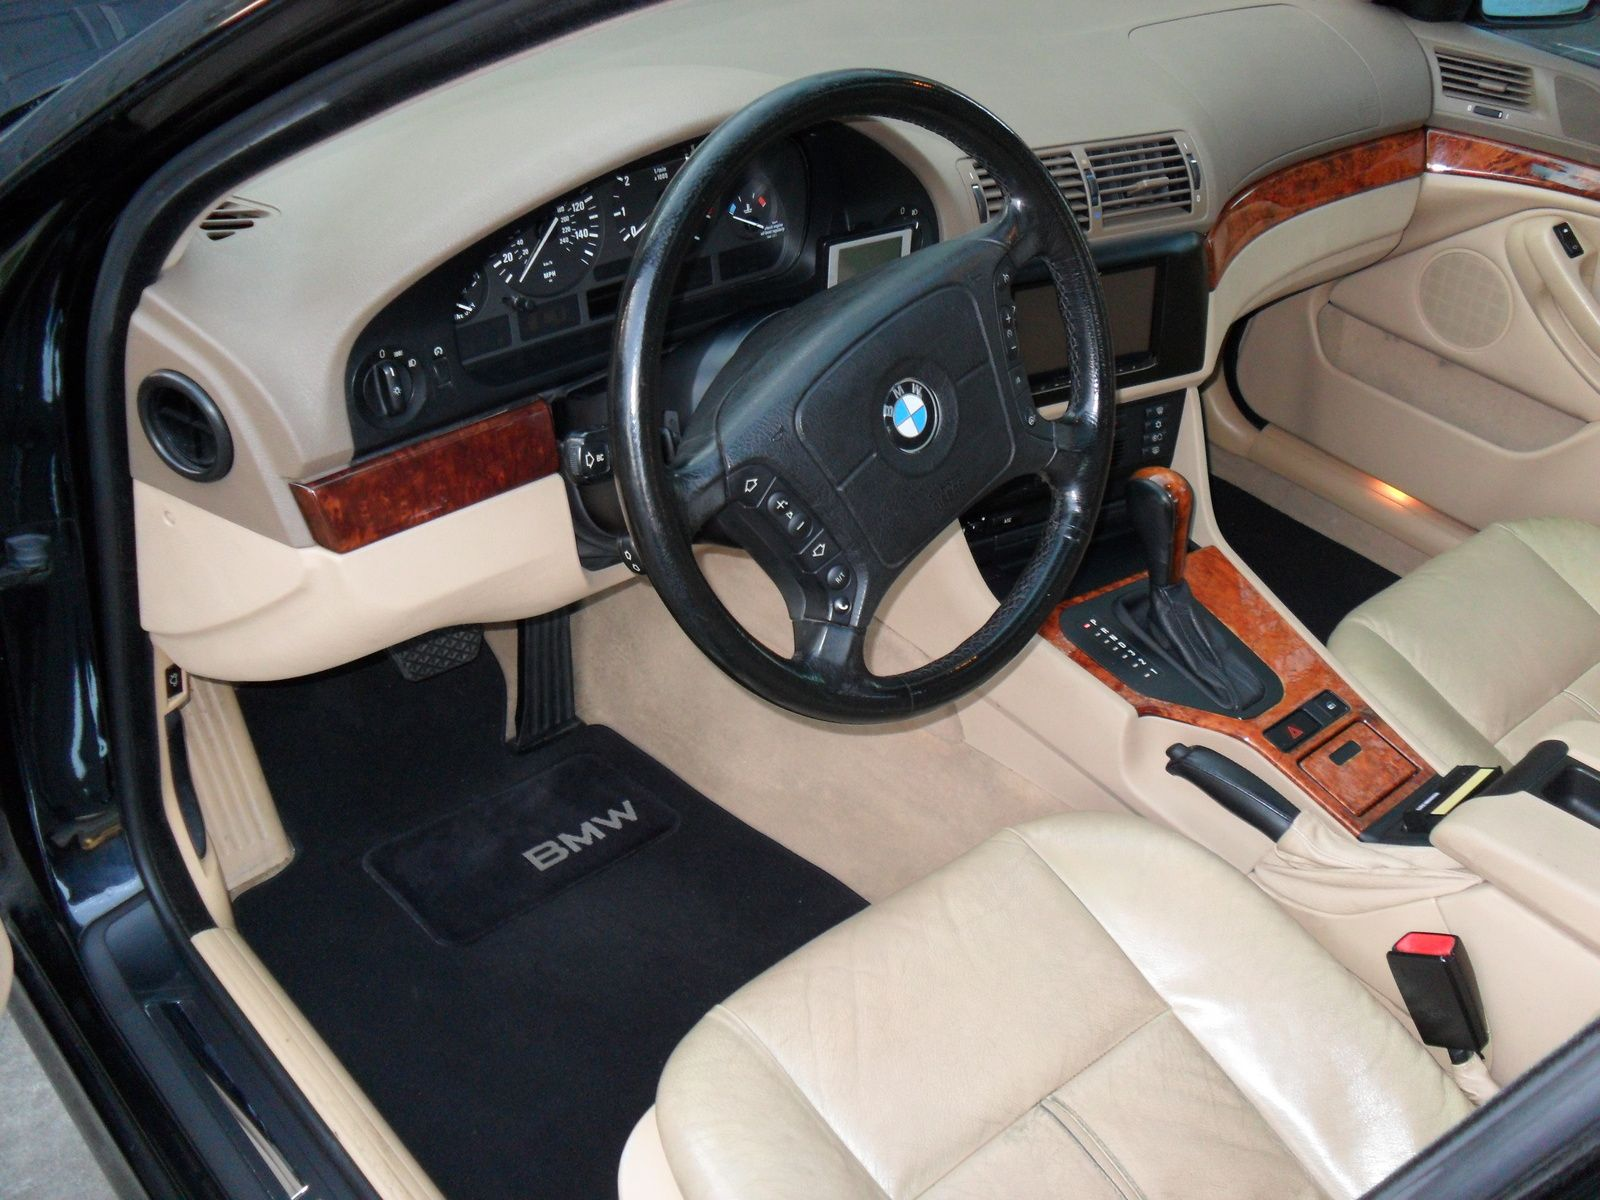 1998 BMW 5 Series Interior